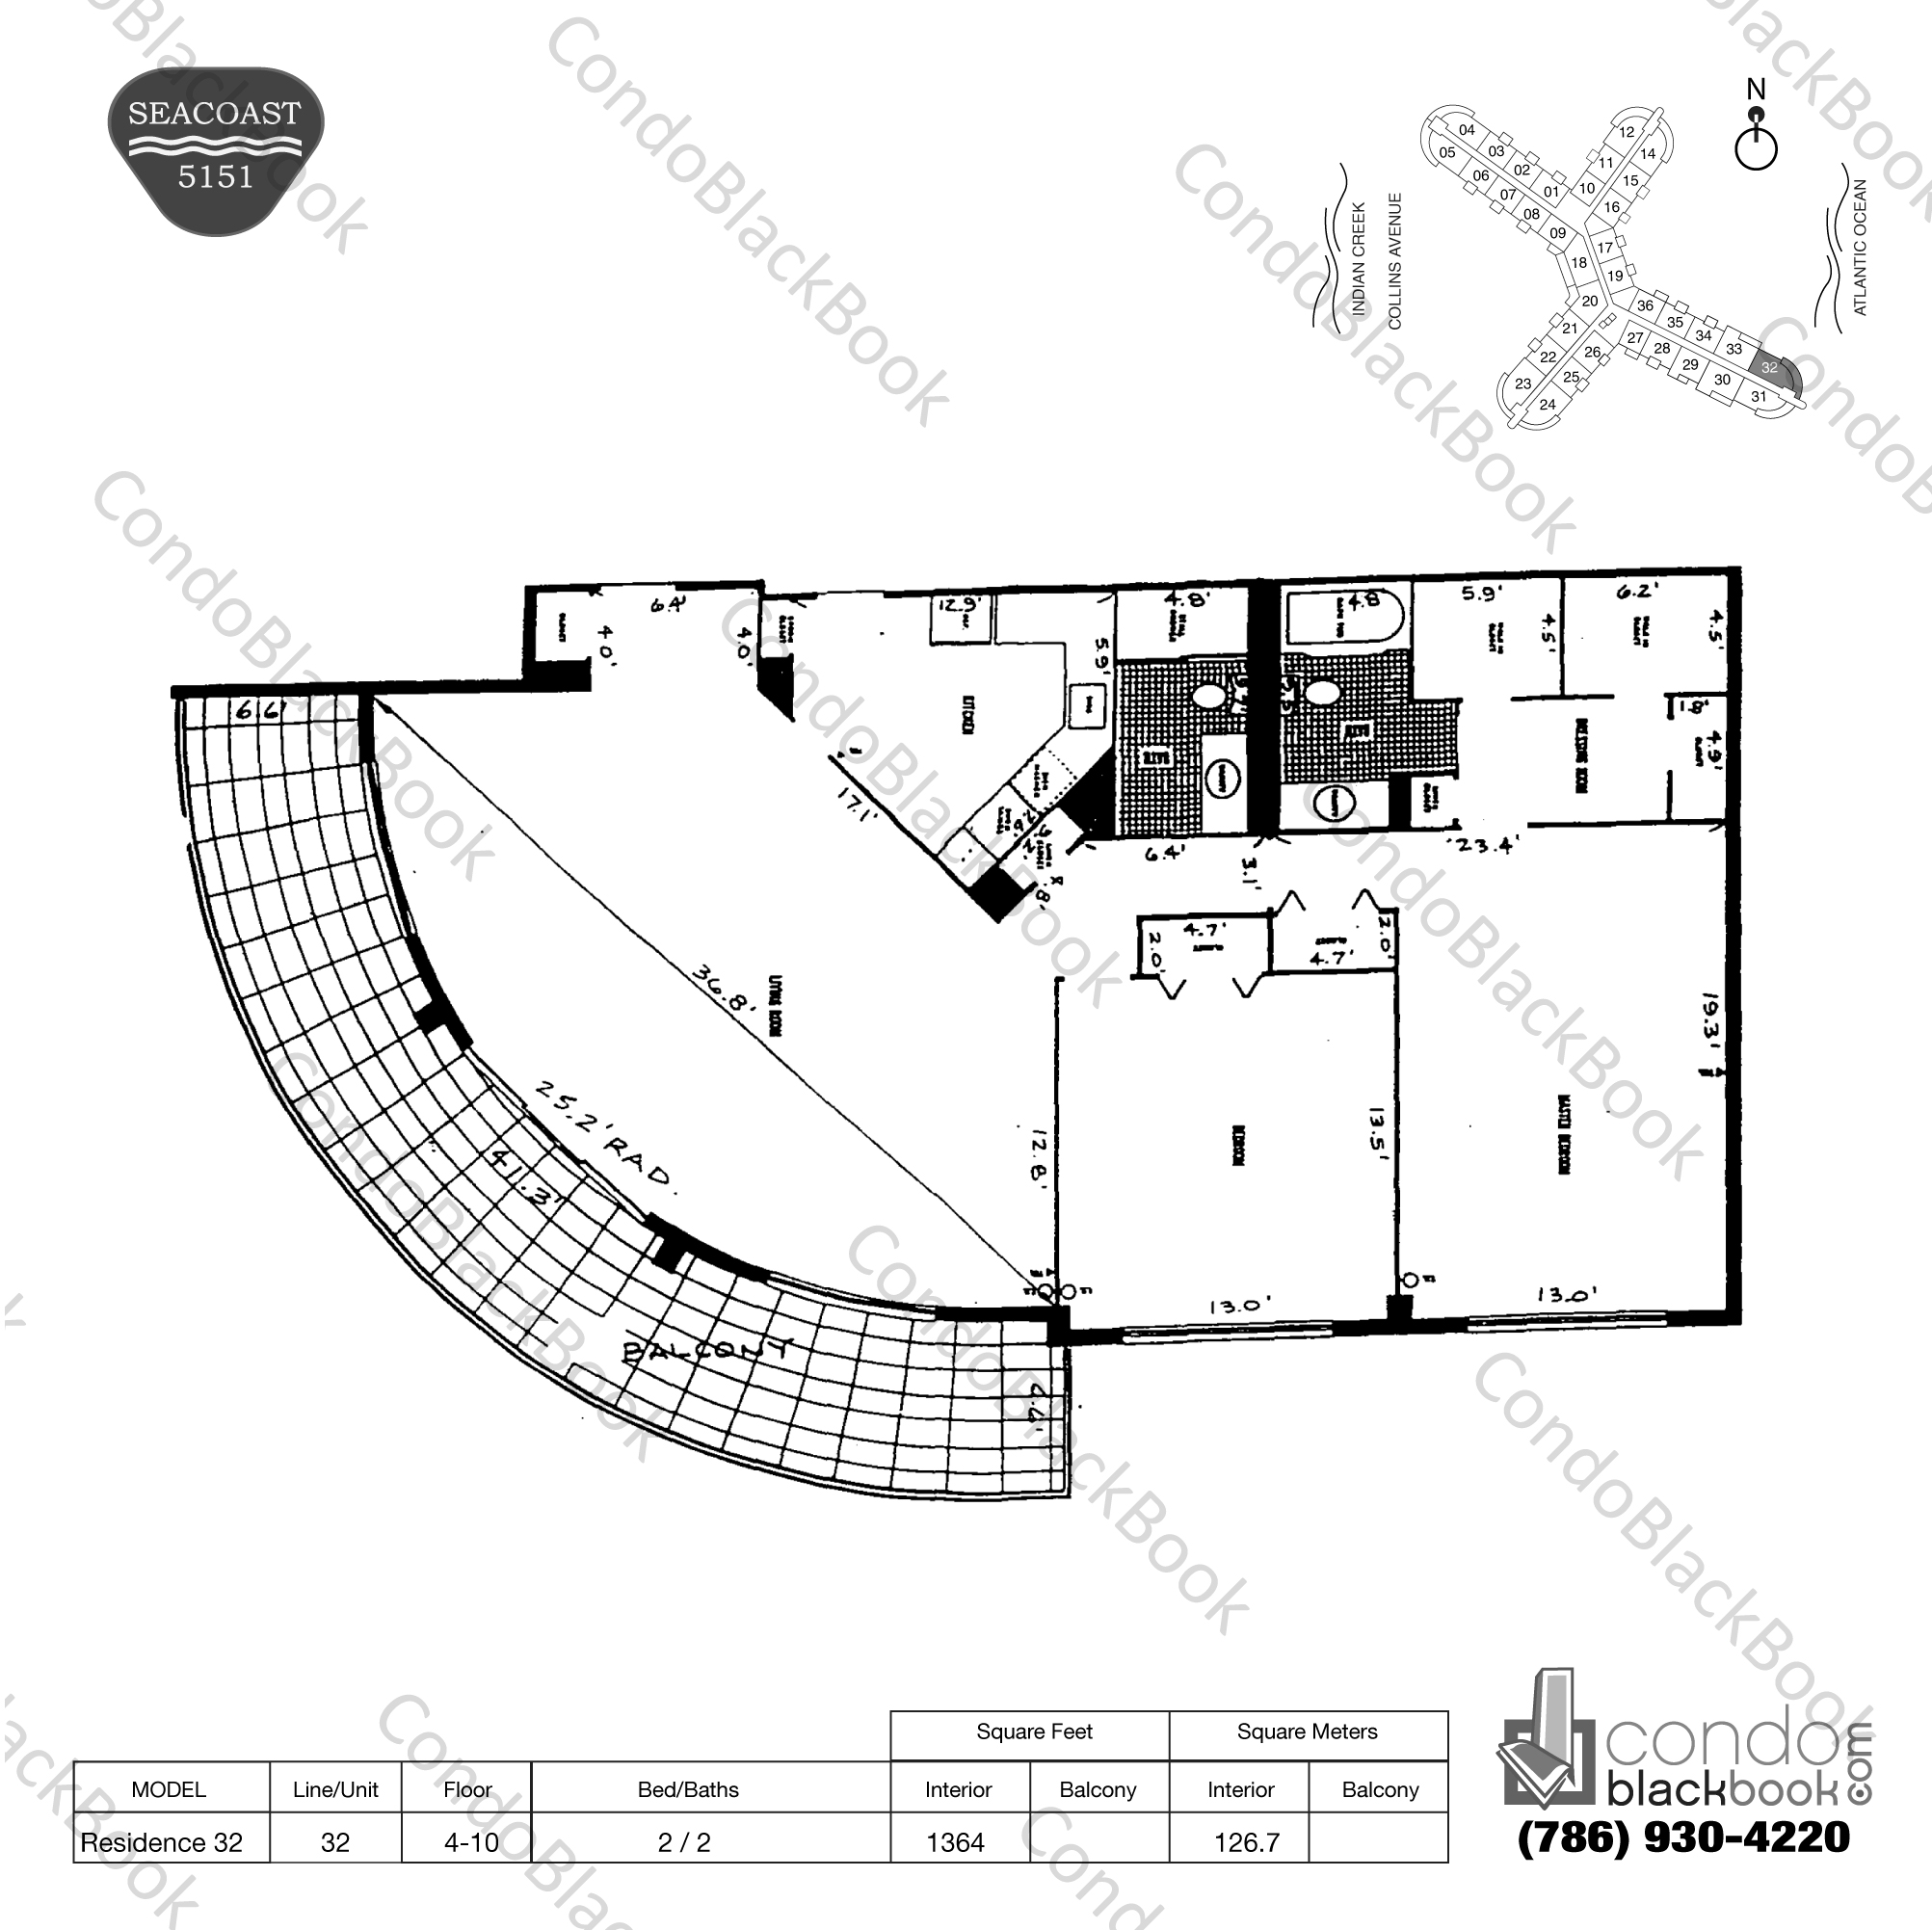 Floor plan for Seacoast 5151 Mid-Beach Miami Beach, model Residence 32, line 32, 2 / 2 bedrooms, 1364 sq ft